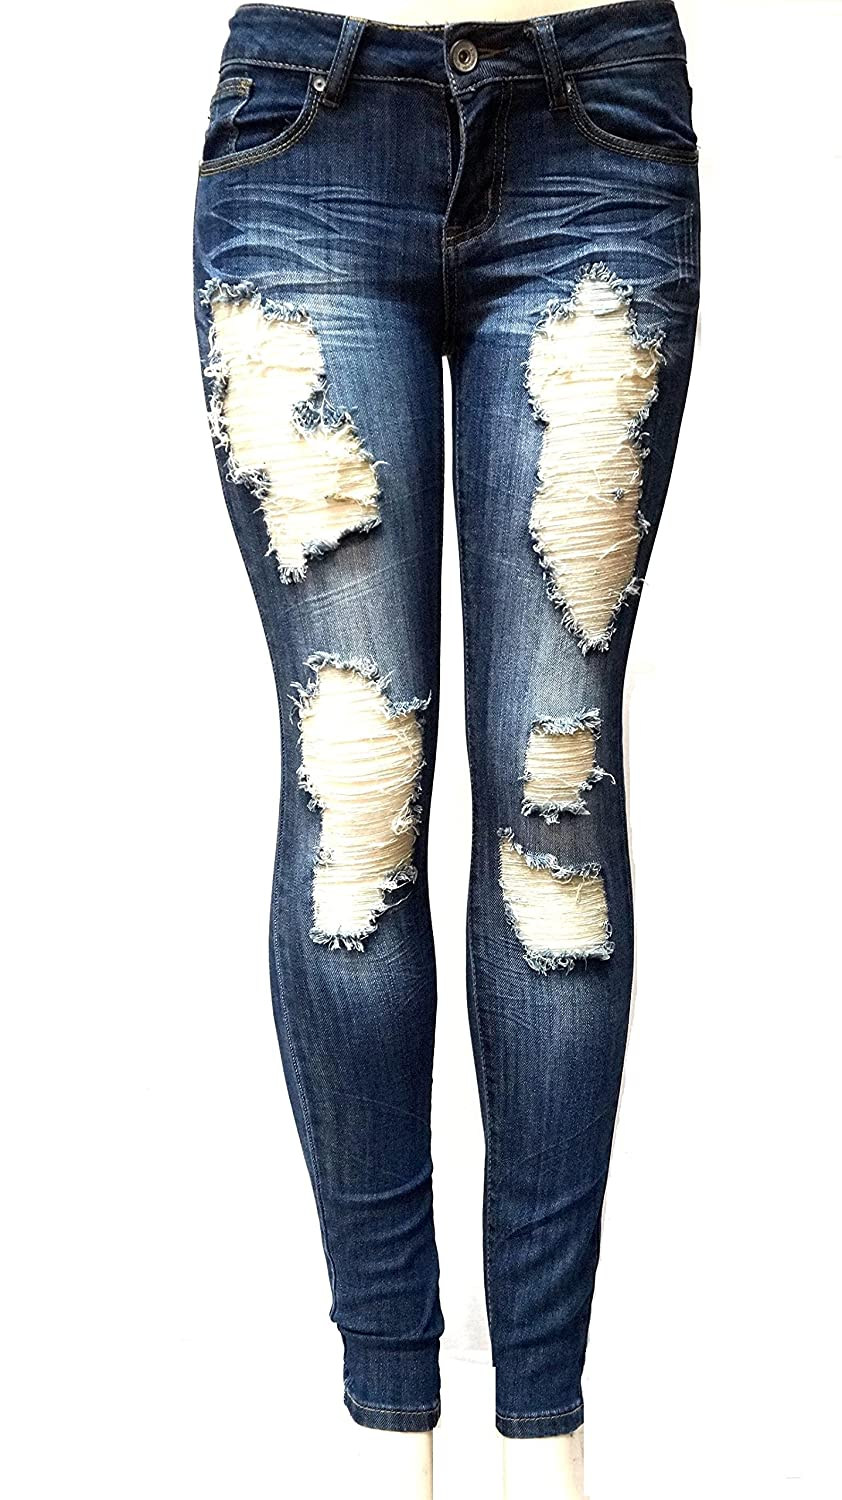 Find skinny jeans for tall juniors – Super Jeans in dieser ...